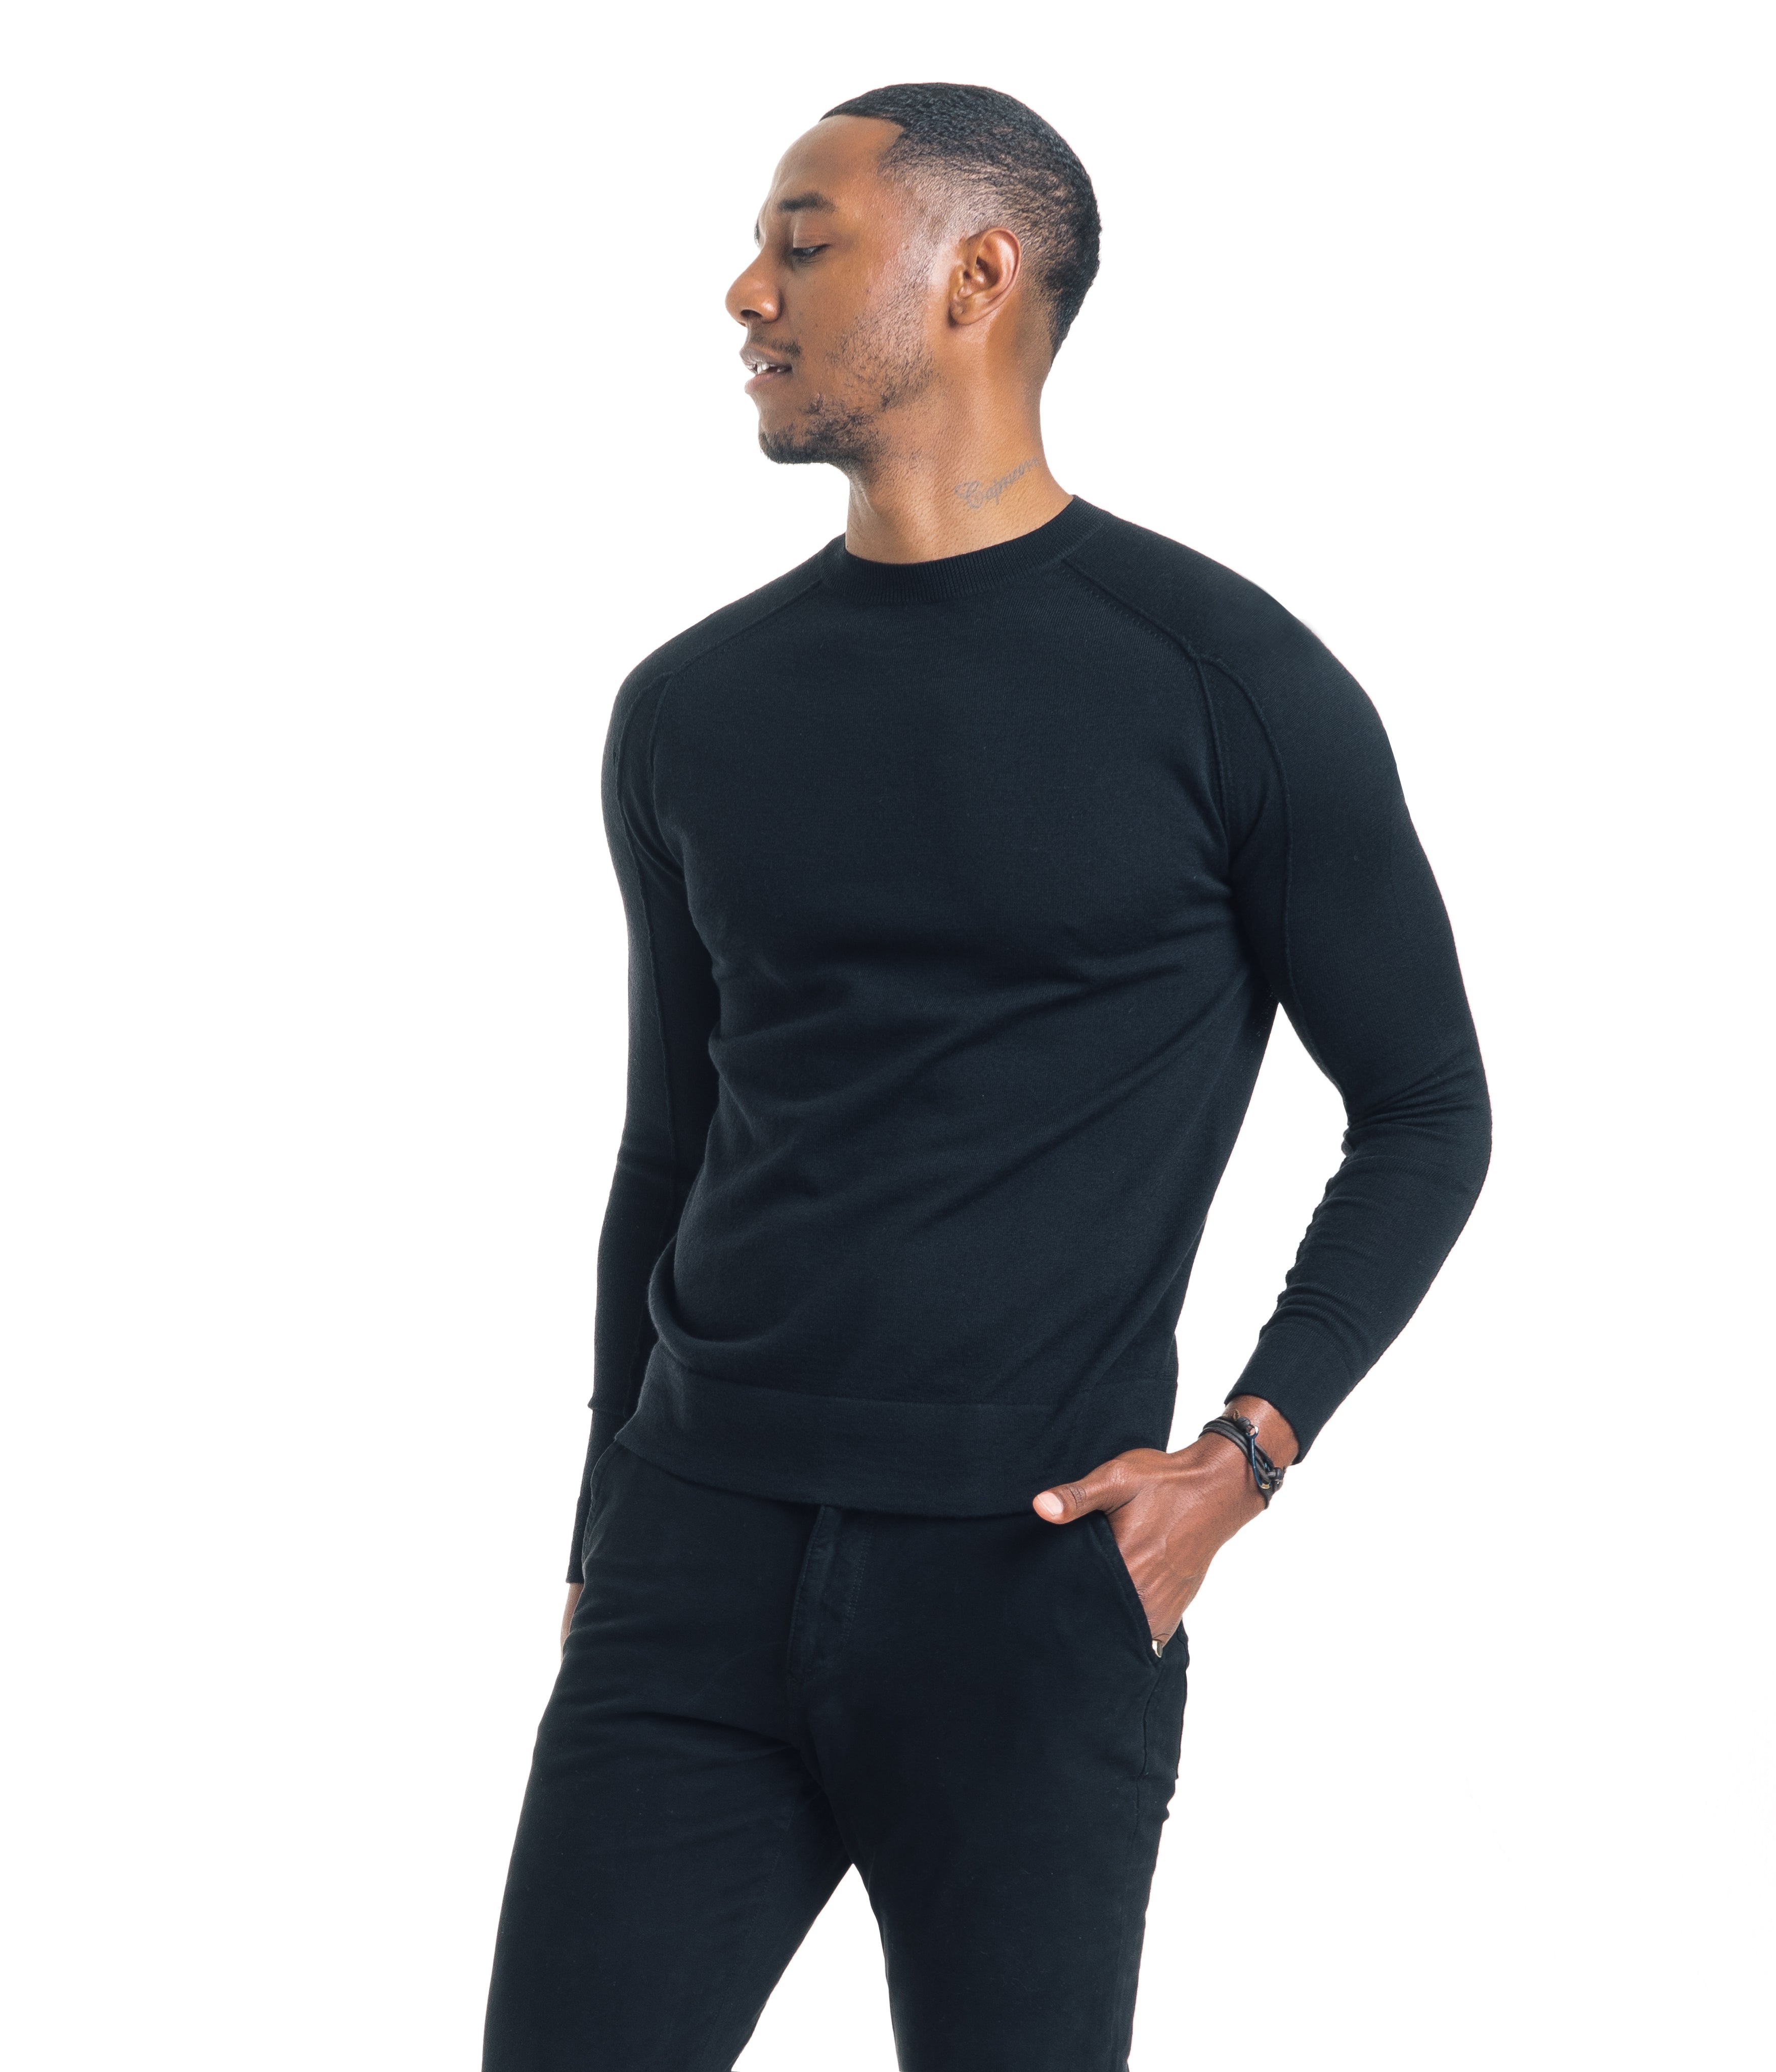 Modern Crew - Extrafine Merino - Black - Sweaters - Good Man Brand